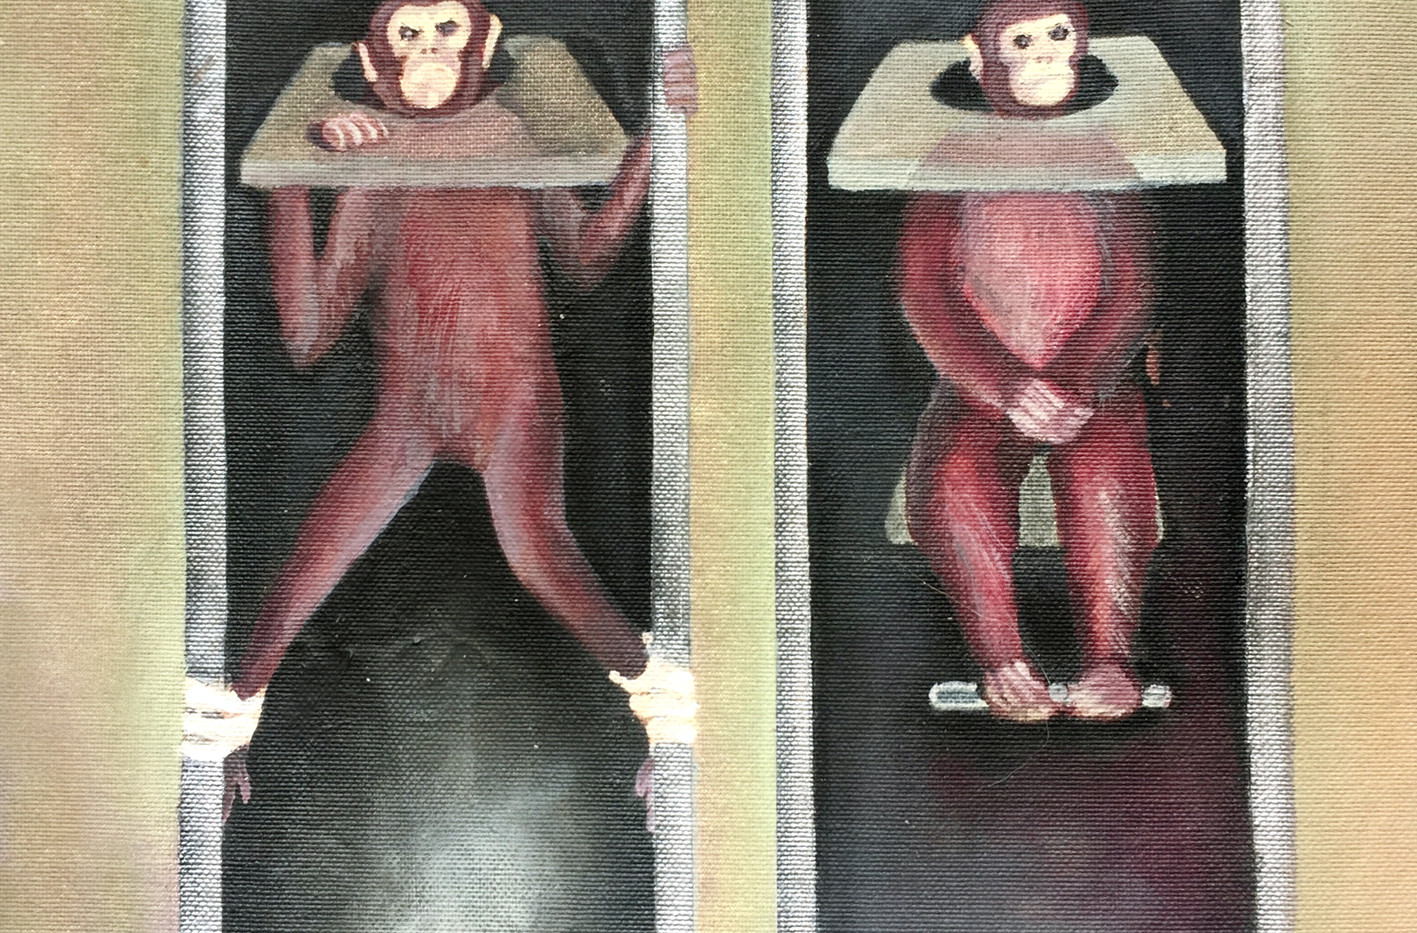 Monkeys in Lab21.jpg